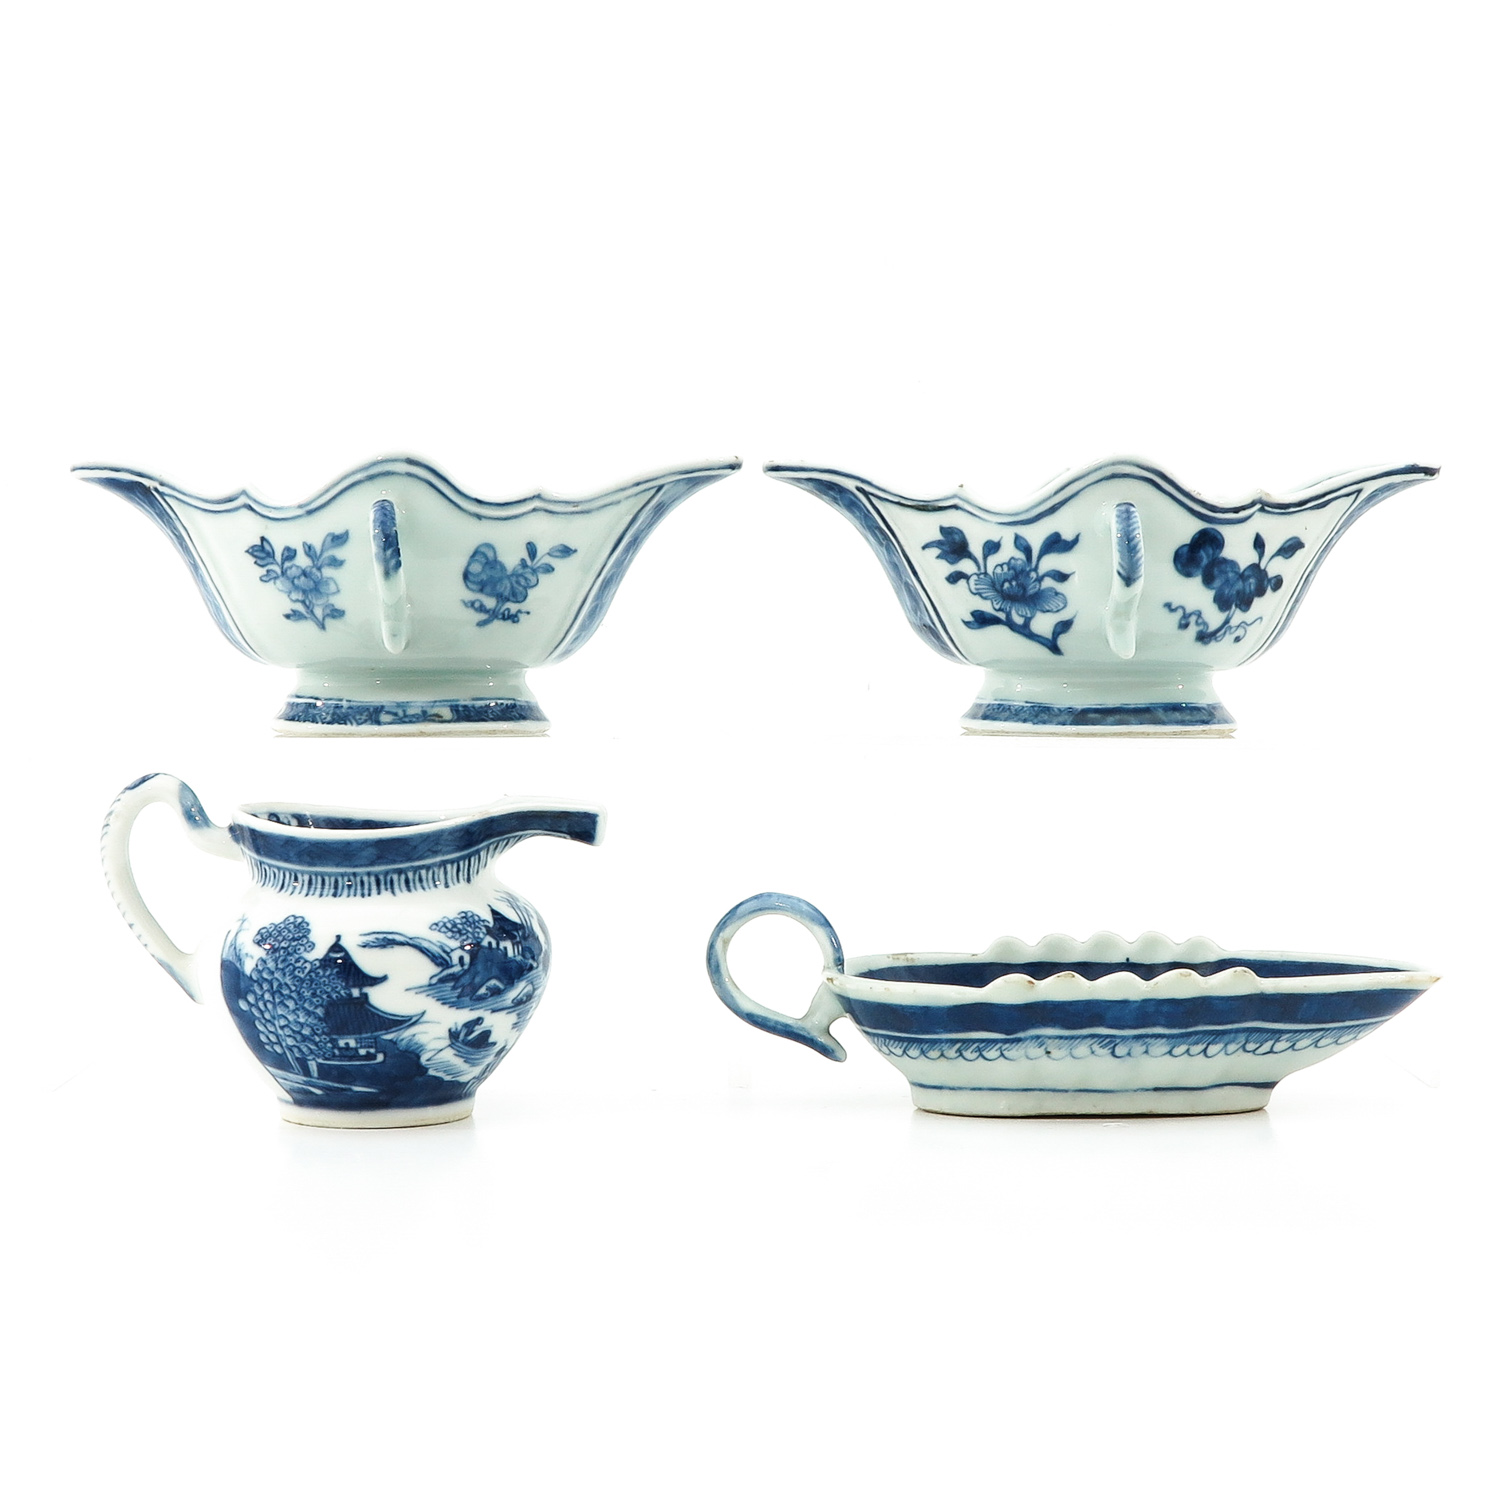 A Collection of Porcelain - Image 3 of 10